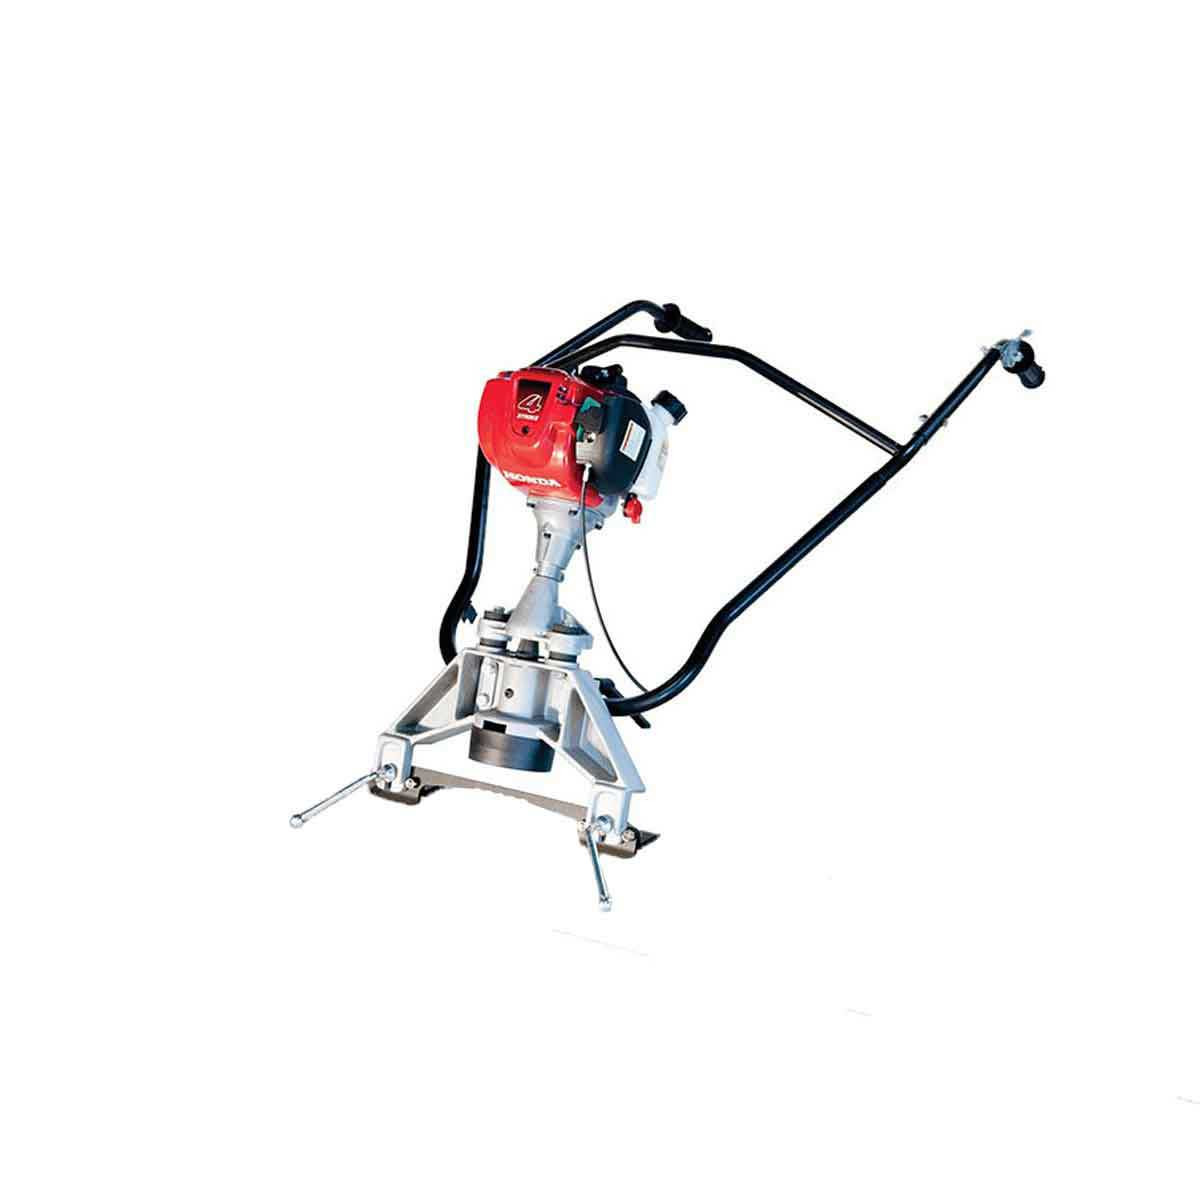 Wyco Concrete Power Unit With Screed